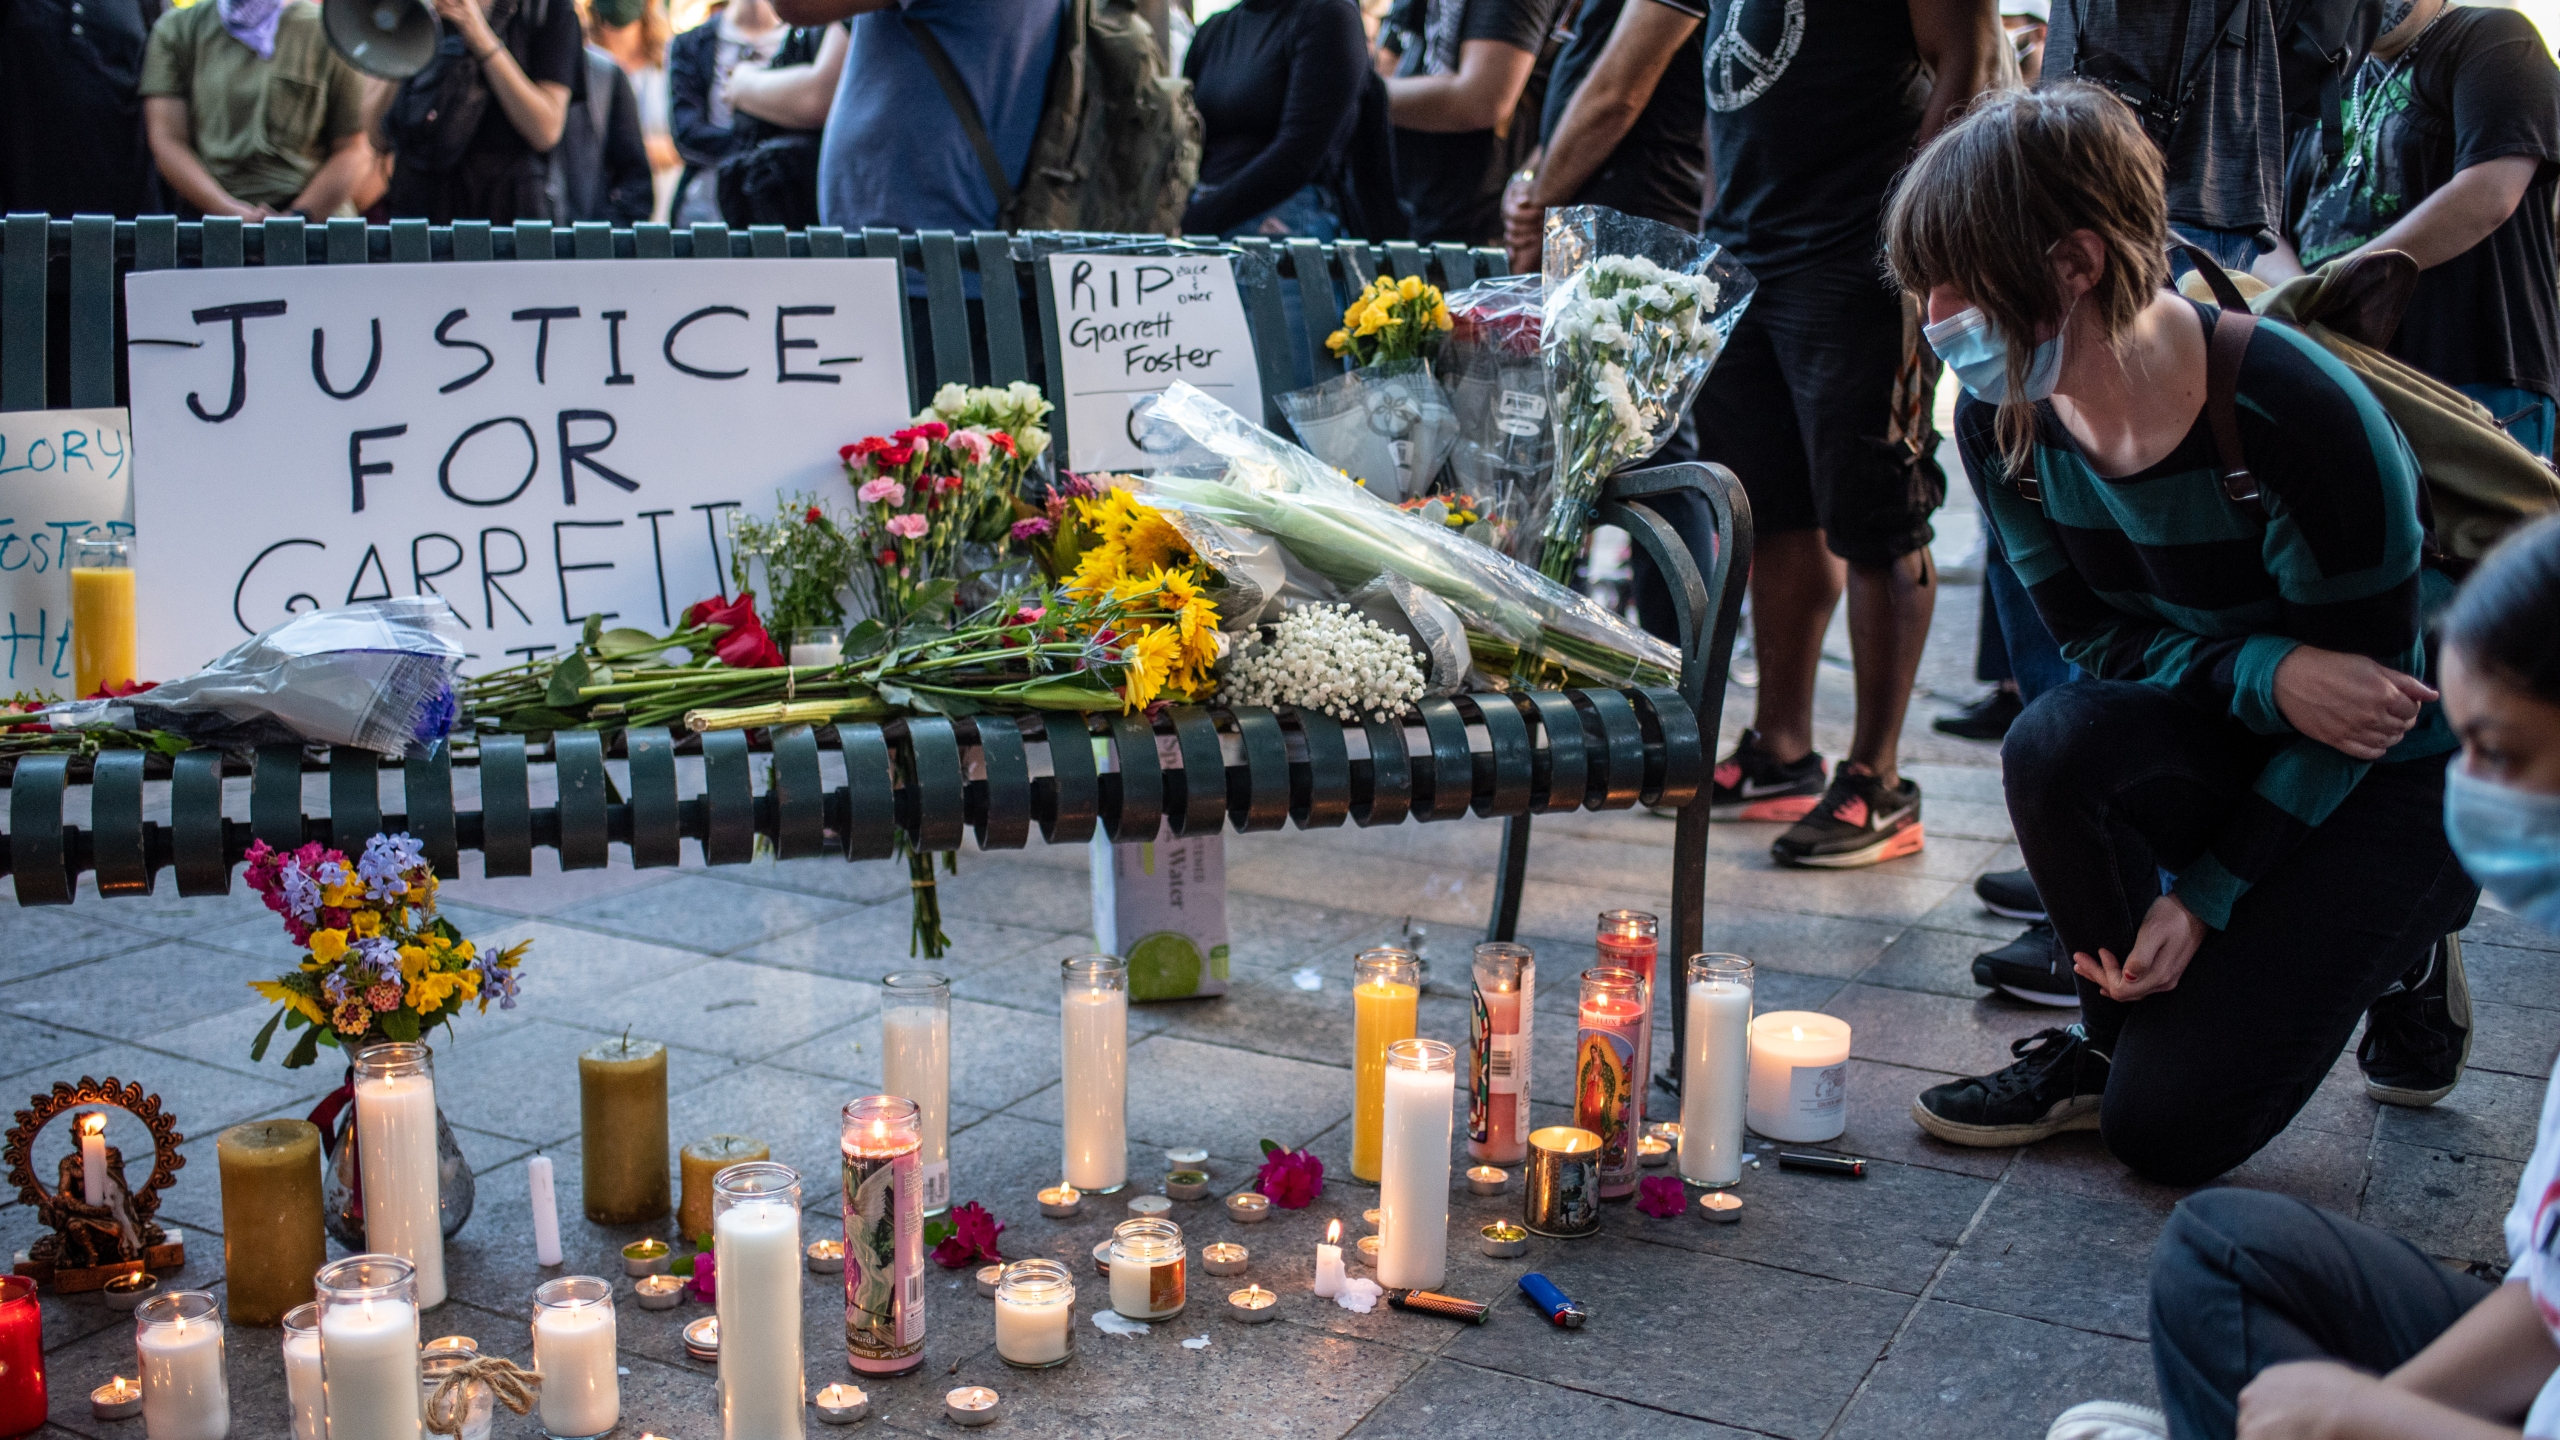 An attendee kneels at a memorial at a vigil for Garrett Foster on July 26, 2020 in downtown Austin, Texas. (Sergio Flores/Getty Images)